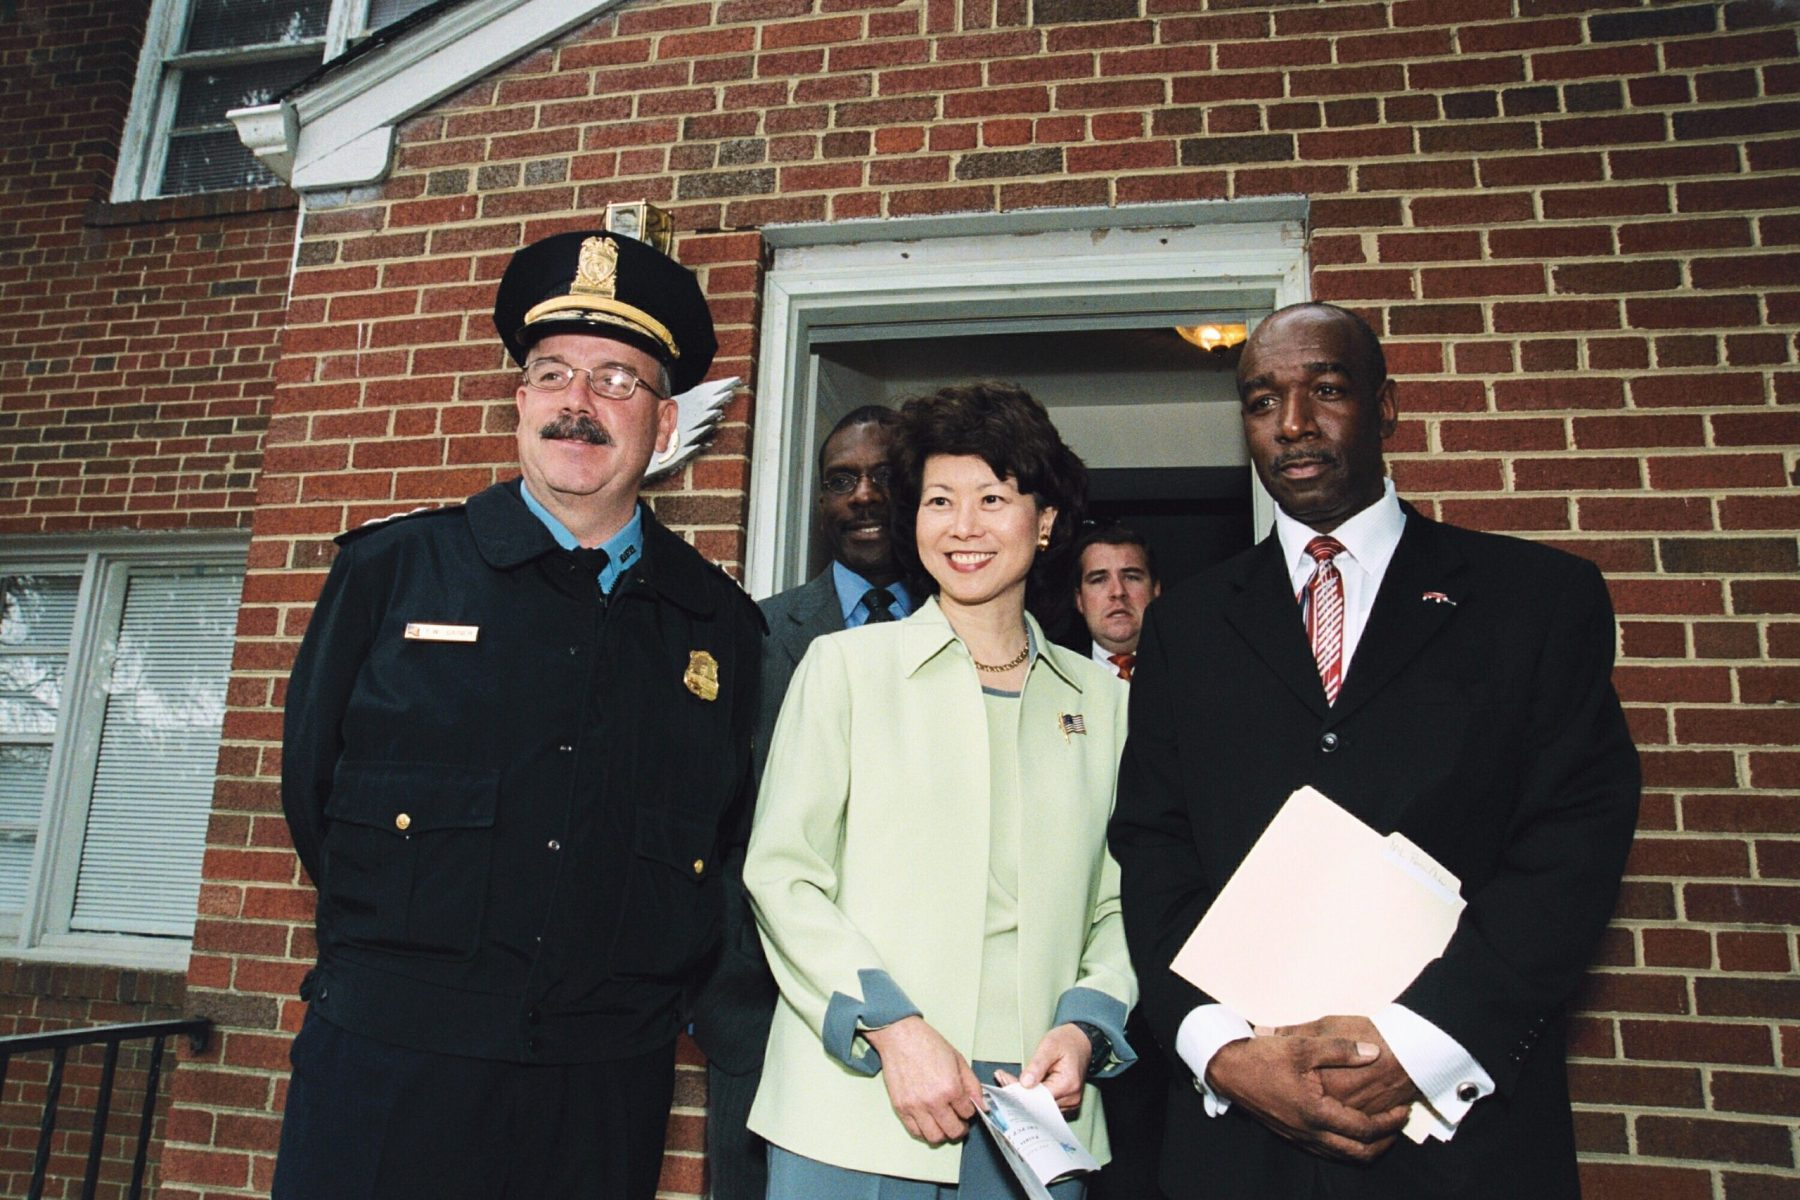 Secretary Elaine Chao celebrating the partnership between faith-based and community organizations and D. C. law enforcement to help ex-offenders gain employment and re-integrate into their communities.